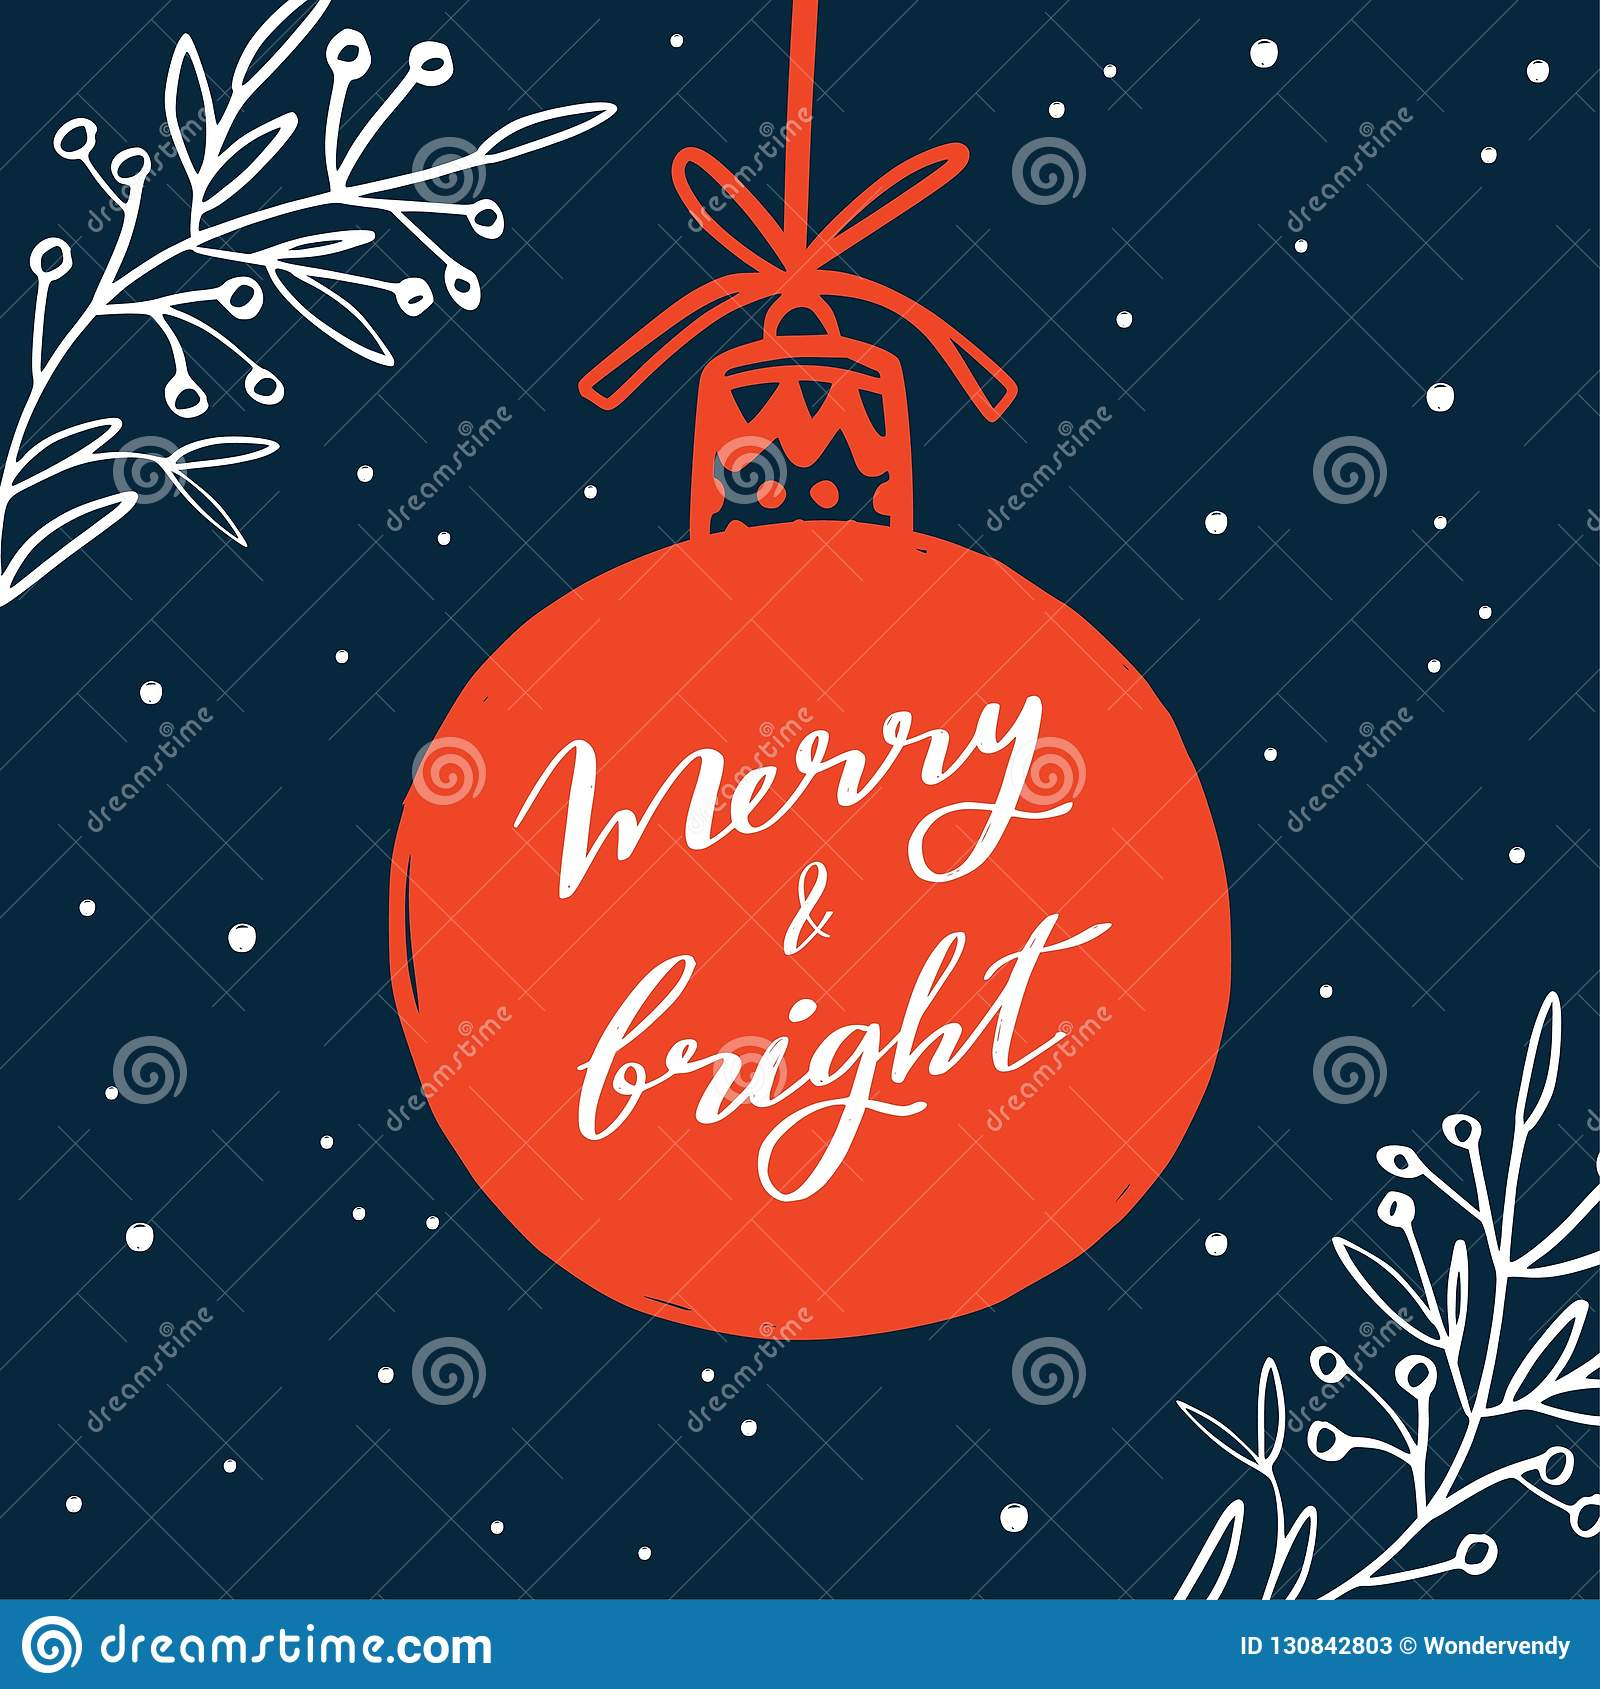 Merry Christmas and New Year words on Christmas tree decoration. Vector